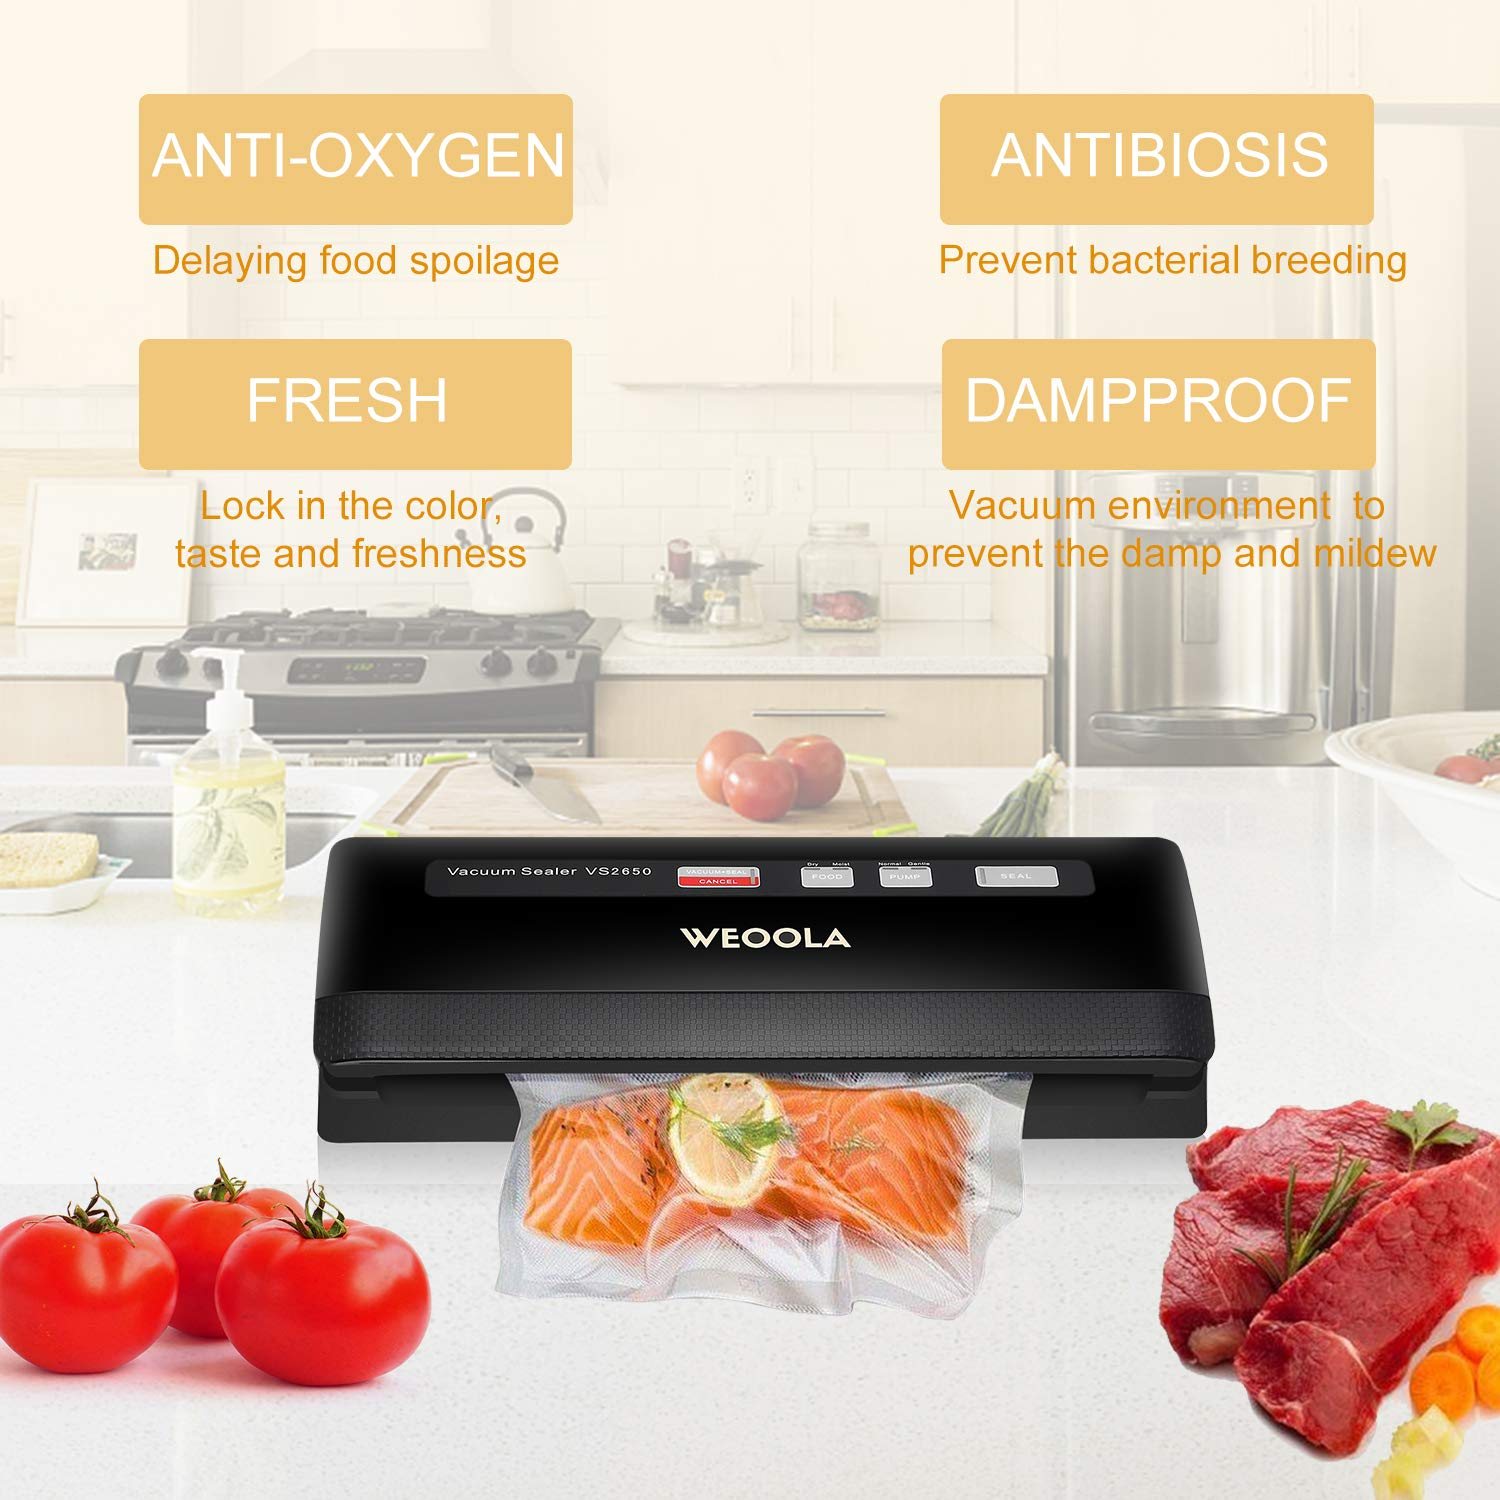 Vacuum Sealer/Food Sealer,Automatic Vacuum Air Sealing System For Food Preservation,Papers,Jewelry and Electronics | 3 sealing options | 4 Food Modes  | Led Indicator Lights | 10 Sealer Bags for Free